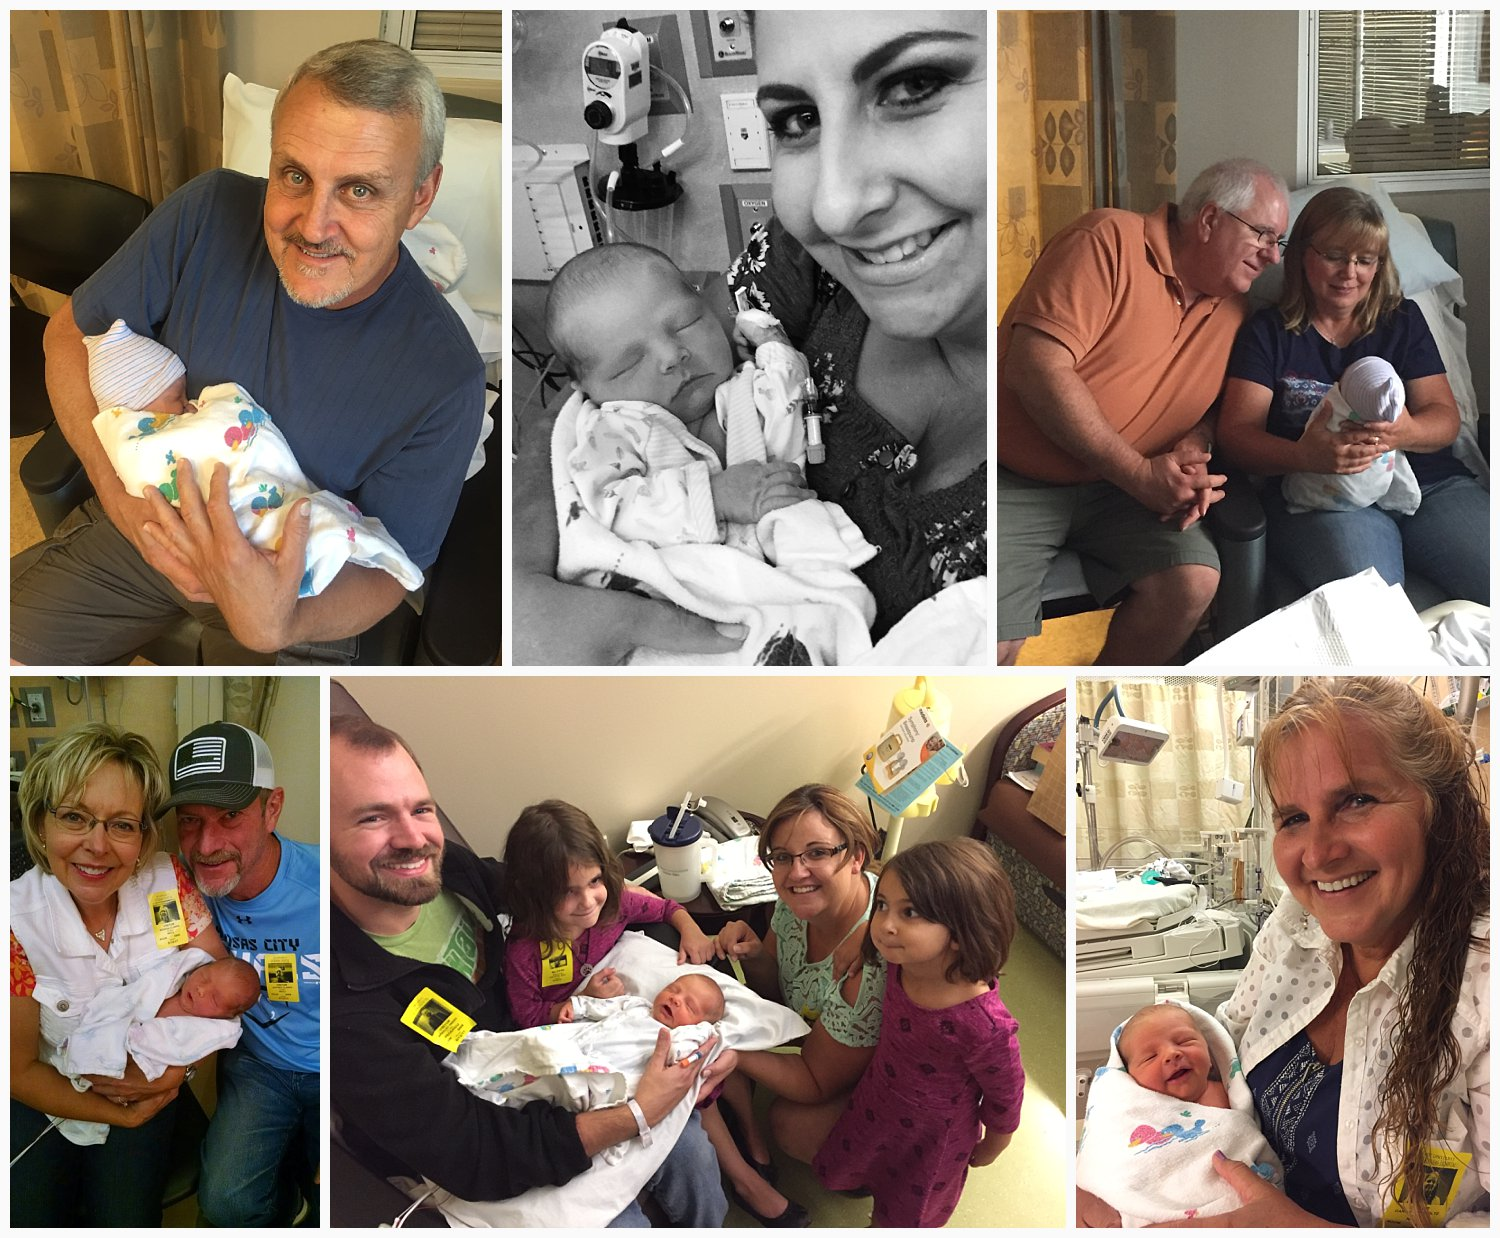 We had lots of visitors throughout our ten day hospital stay. The top left is my dad, followed by my sister, Krystal. Brad's mom and dad, James and Tanya, are pictured in the top right. The bottom left are Robbie and Jeff Clarke, dear friends of mine who Jameson took his middle name from. My sister Erica and her two girls also visited. In spite of being in the NICU, Jameson is flashing a grin for his picture with my mom (Grammy) in the bottom right. Not pictured are my grandma and Marlyn and Kathie Spare (a couple of friends from church) who made the trip to visit Monday, before Jameson was born.